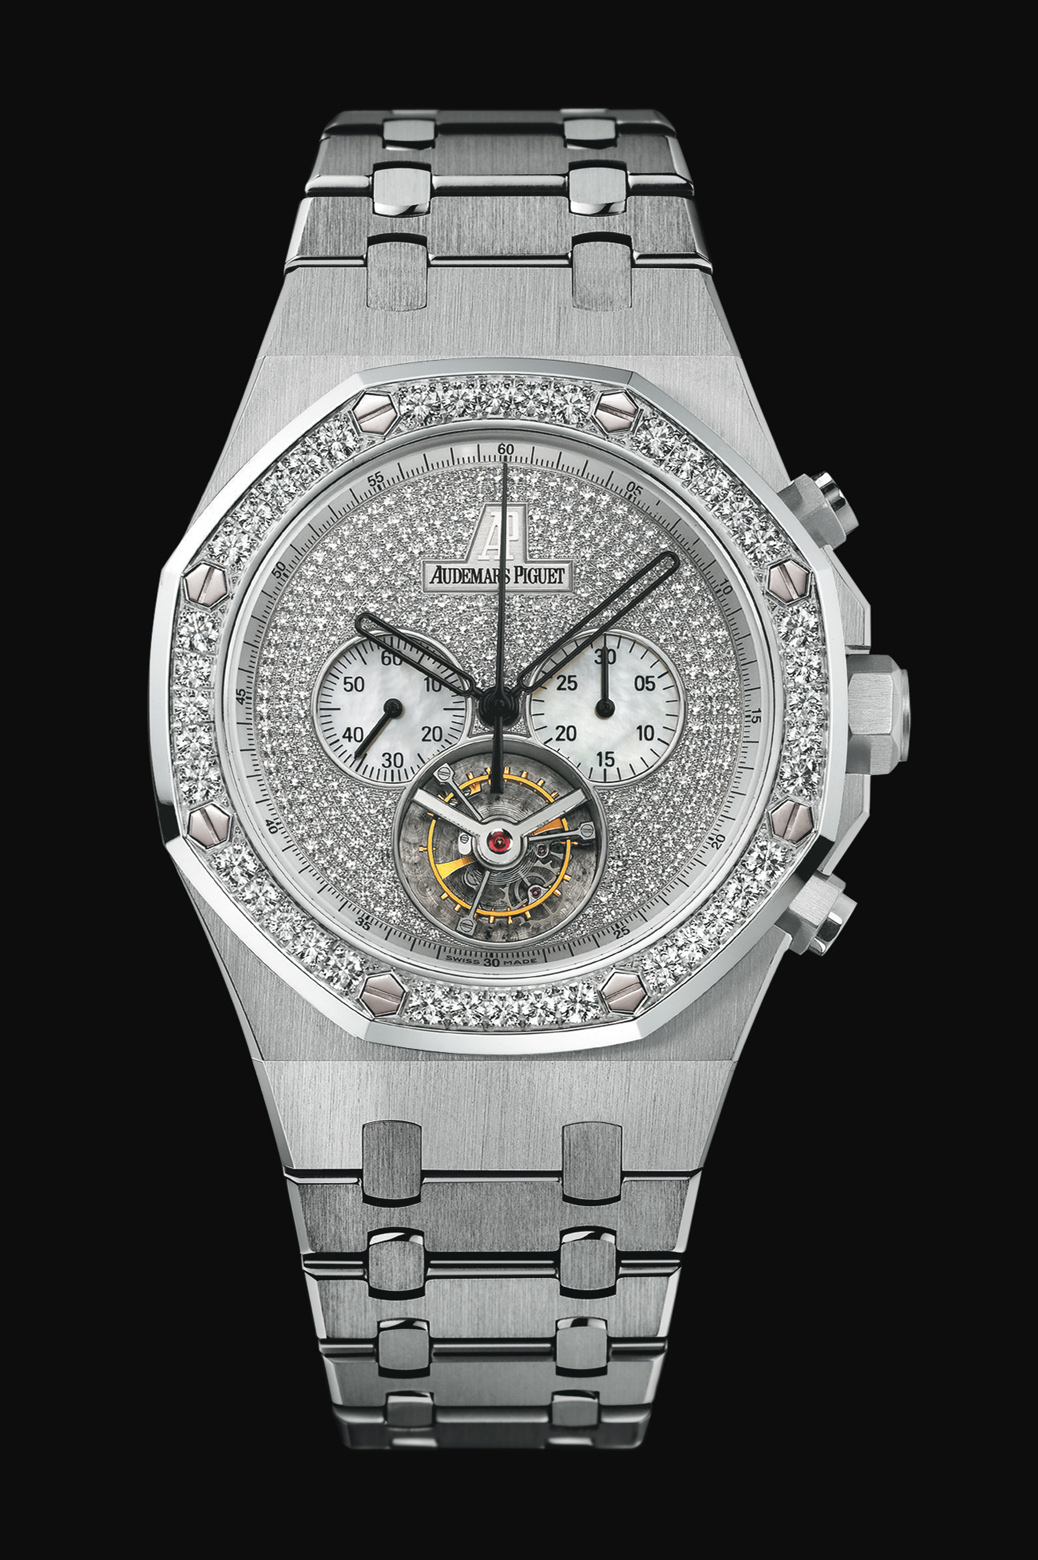 ���� Audemars Piguet TOURBILLON CHRONOGRAPH